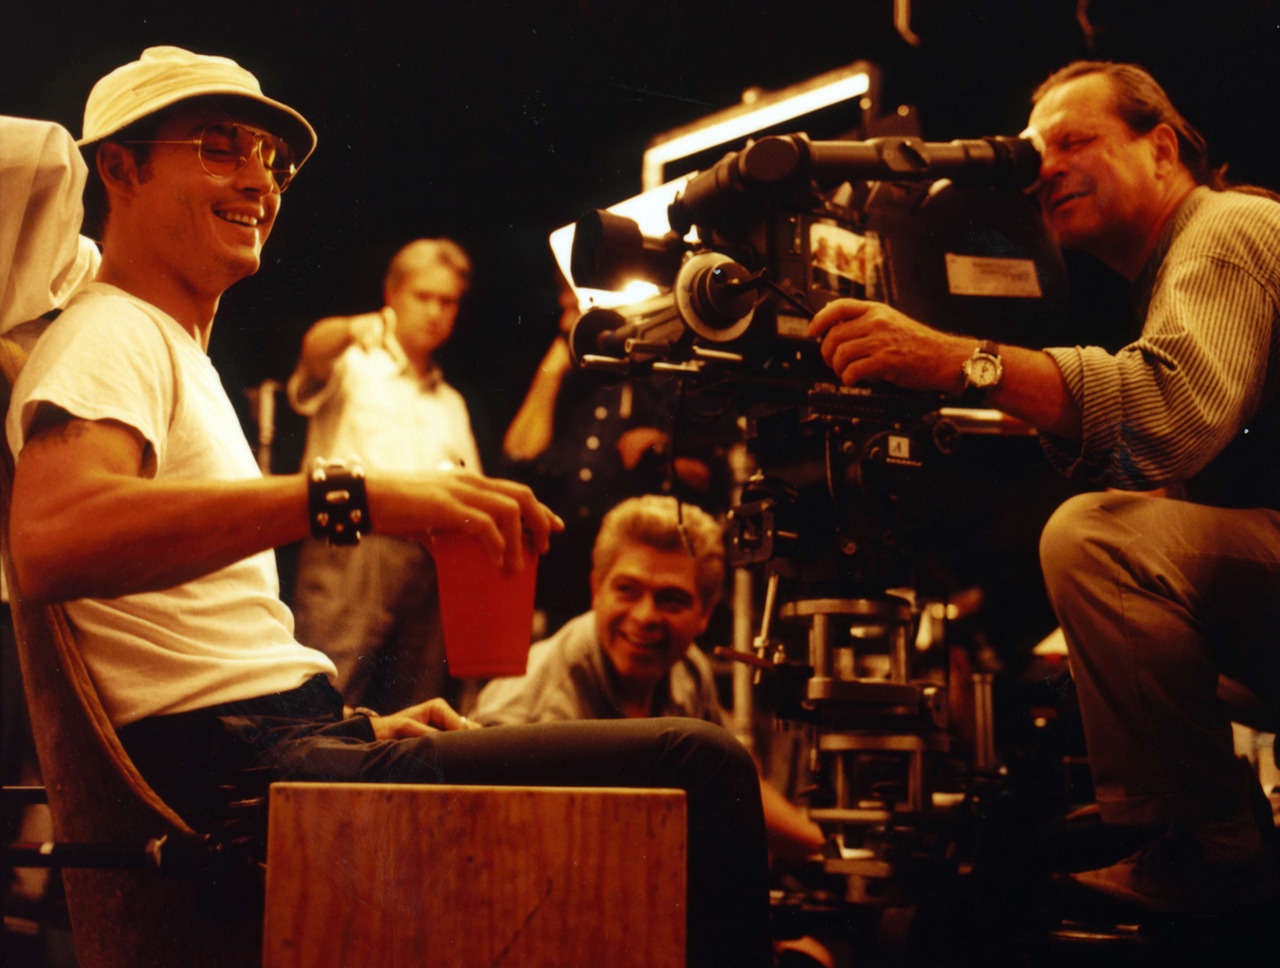 Terry-Gilliam-and-Johnny-Depp-behind-the-scenes-on-the-set-of-Fear-and-Loathing-in-Las-Vegas-fear-and-loathing-in-las-vegas-30442350-1280-968.jpg